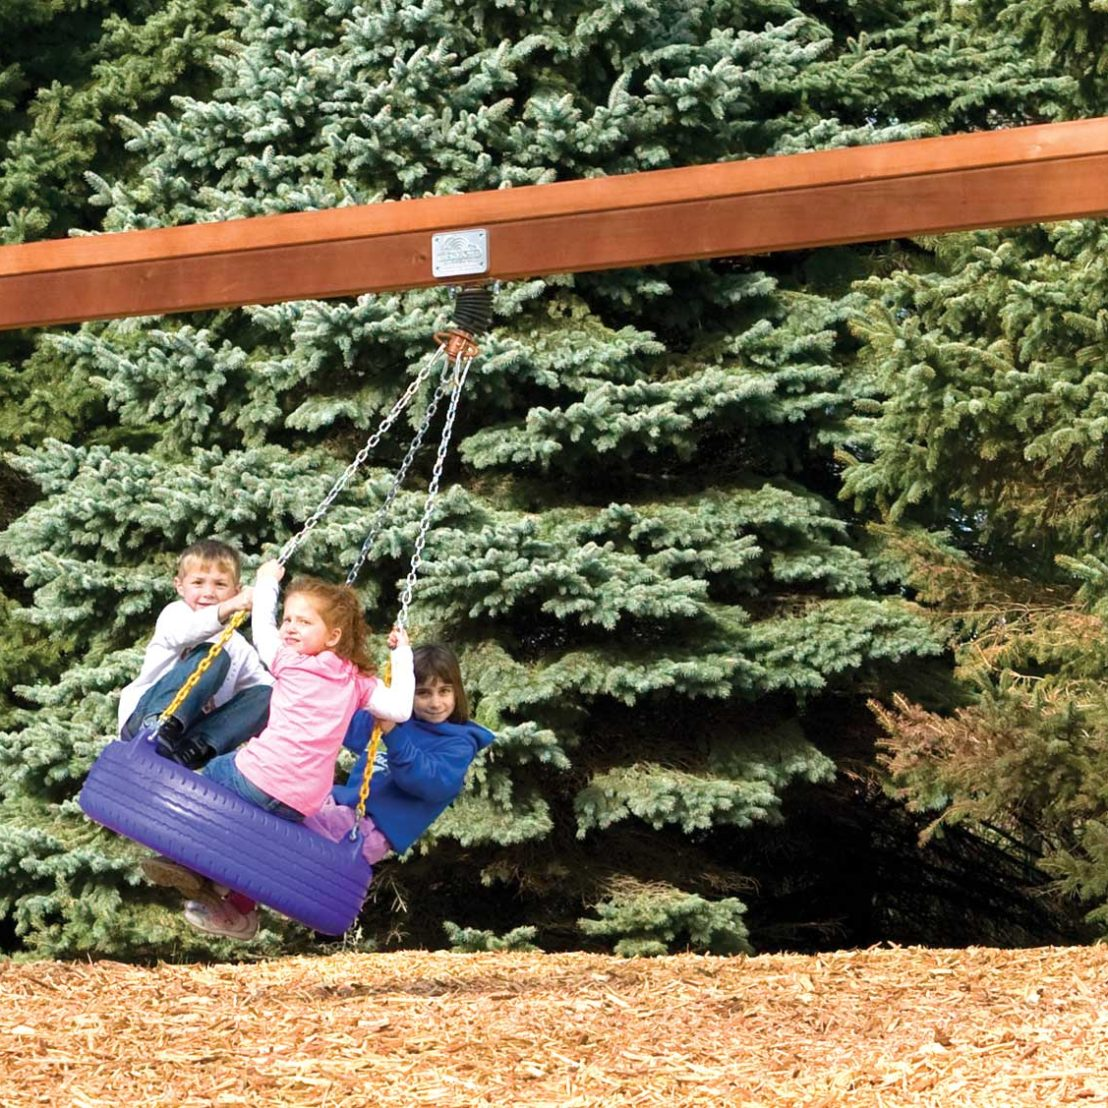 Commercial Tire Wooden Swing Beam